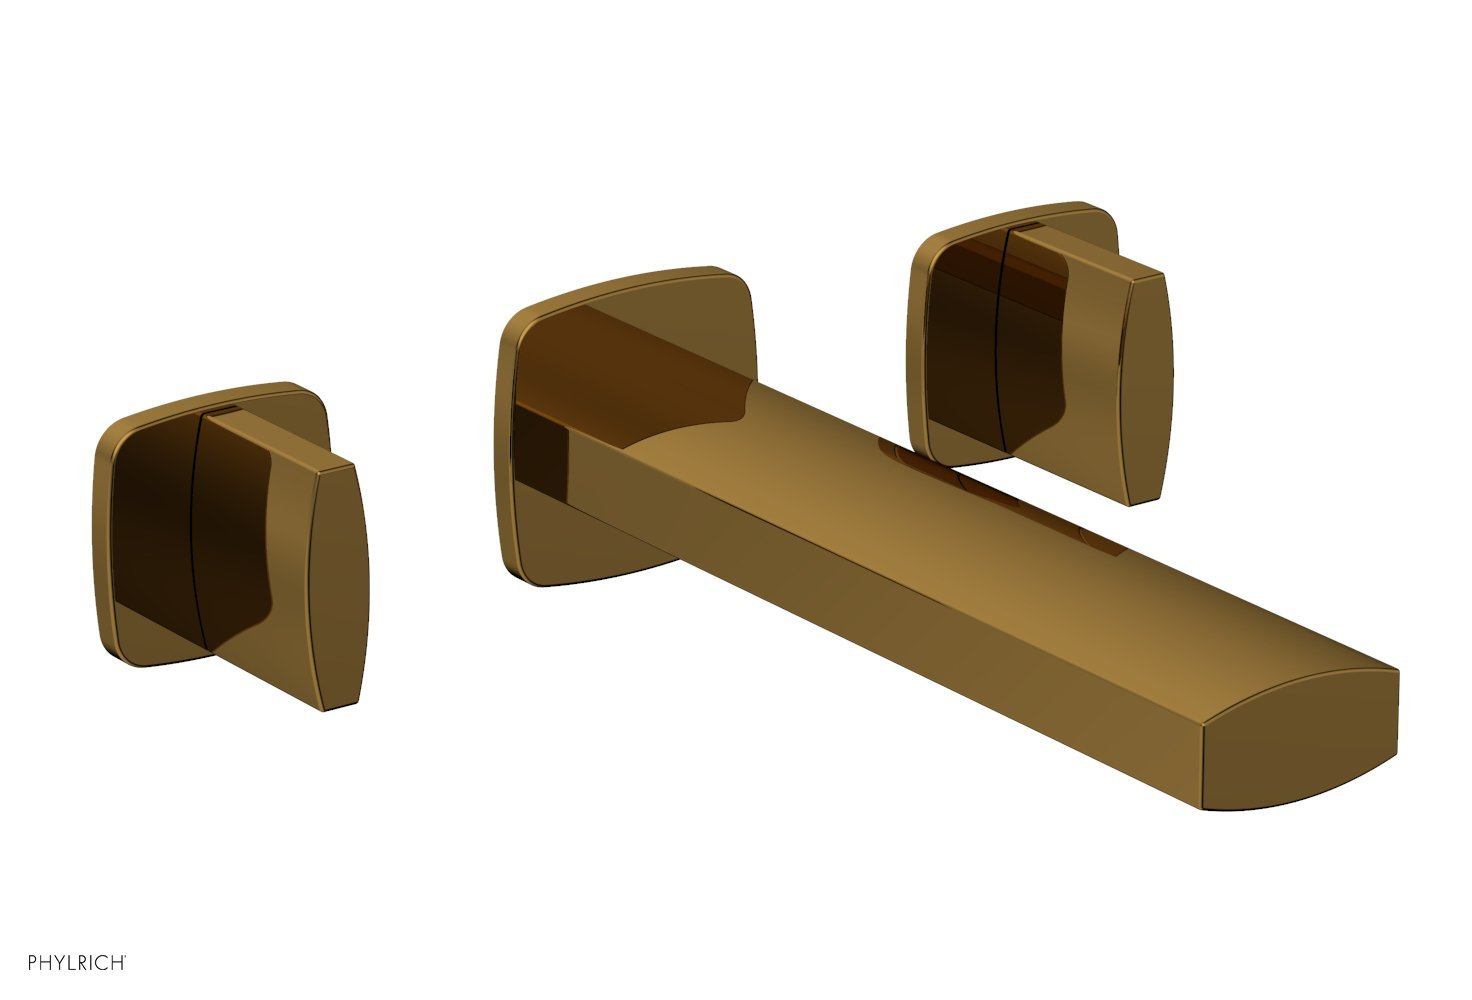 Phylrich 181-11-002 RADI Wall Lavatory Set - Blade Handles - French Brass